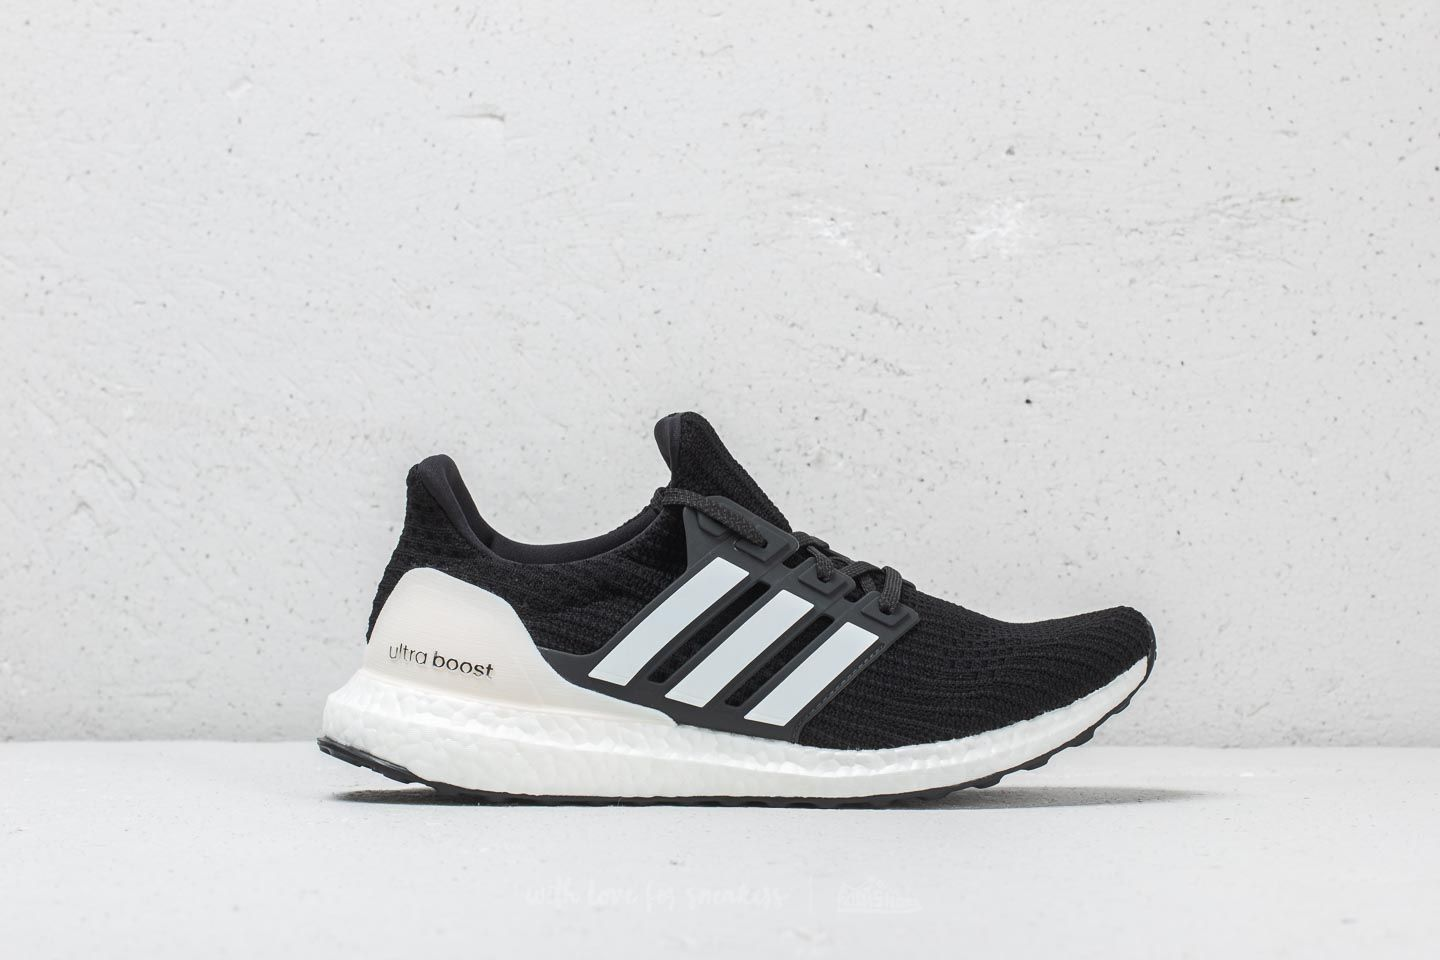 fcdd7304866f3 ... discount adidas ultraboost core black running white carbon at a great  price 180 buy 266a7 3bd14 ...